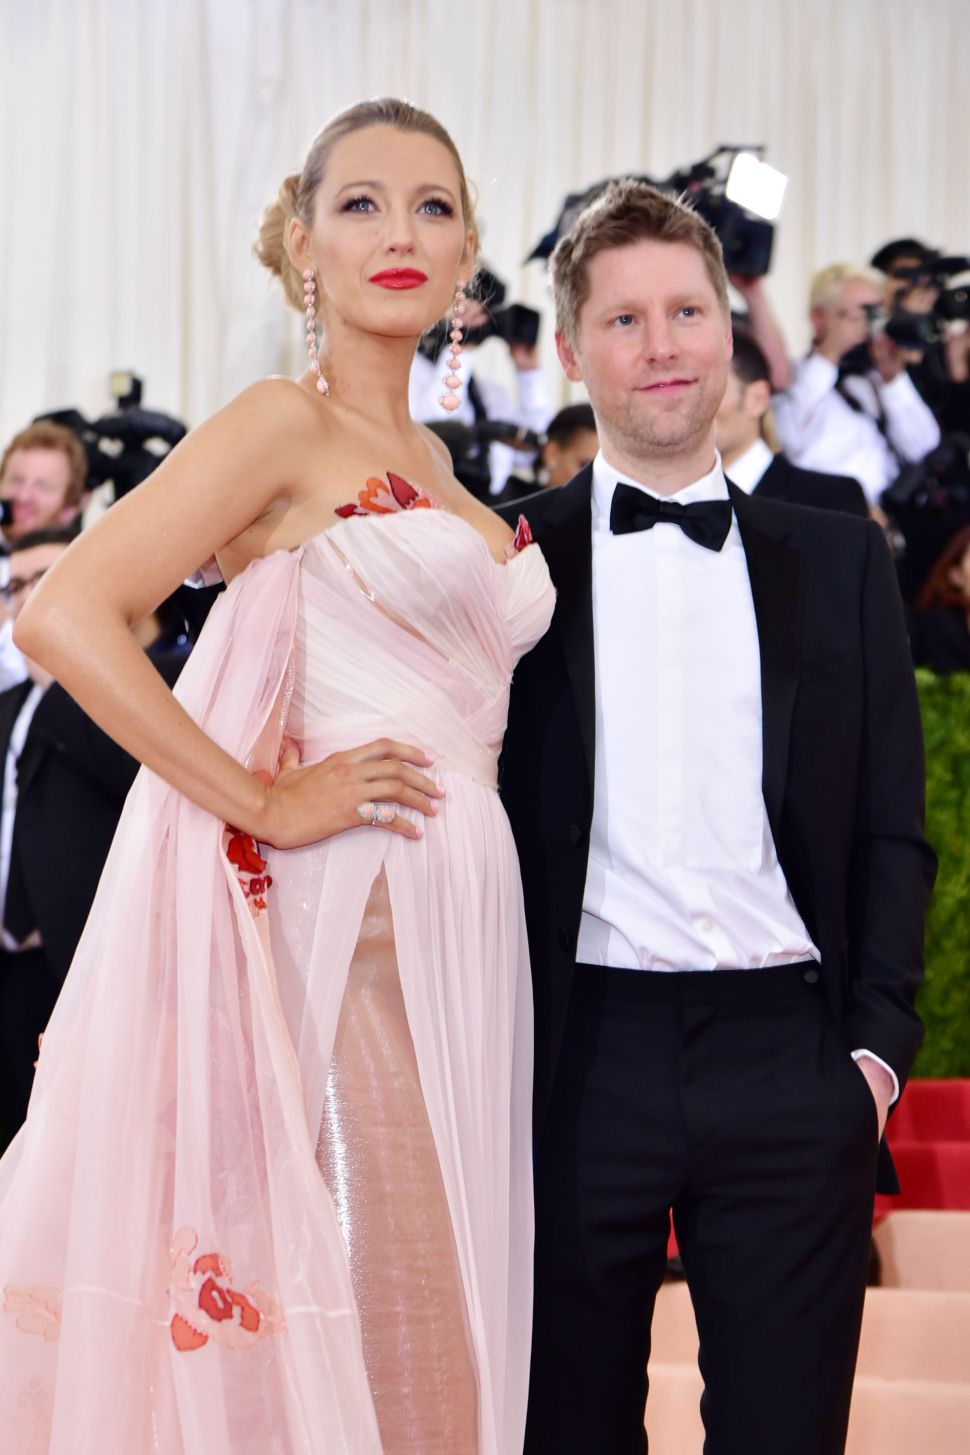 """Blake Lively, Christopher Bailey== Costume Institute Benefit at The Met Celebrates Opening of """"Manus x Machina"""" Exhibition== The Metropolitan Museum of Art, NYC== May 2, 2016== ©Patrick McMullan== Photo - Sean Zanni/PMC=="""